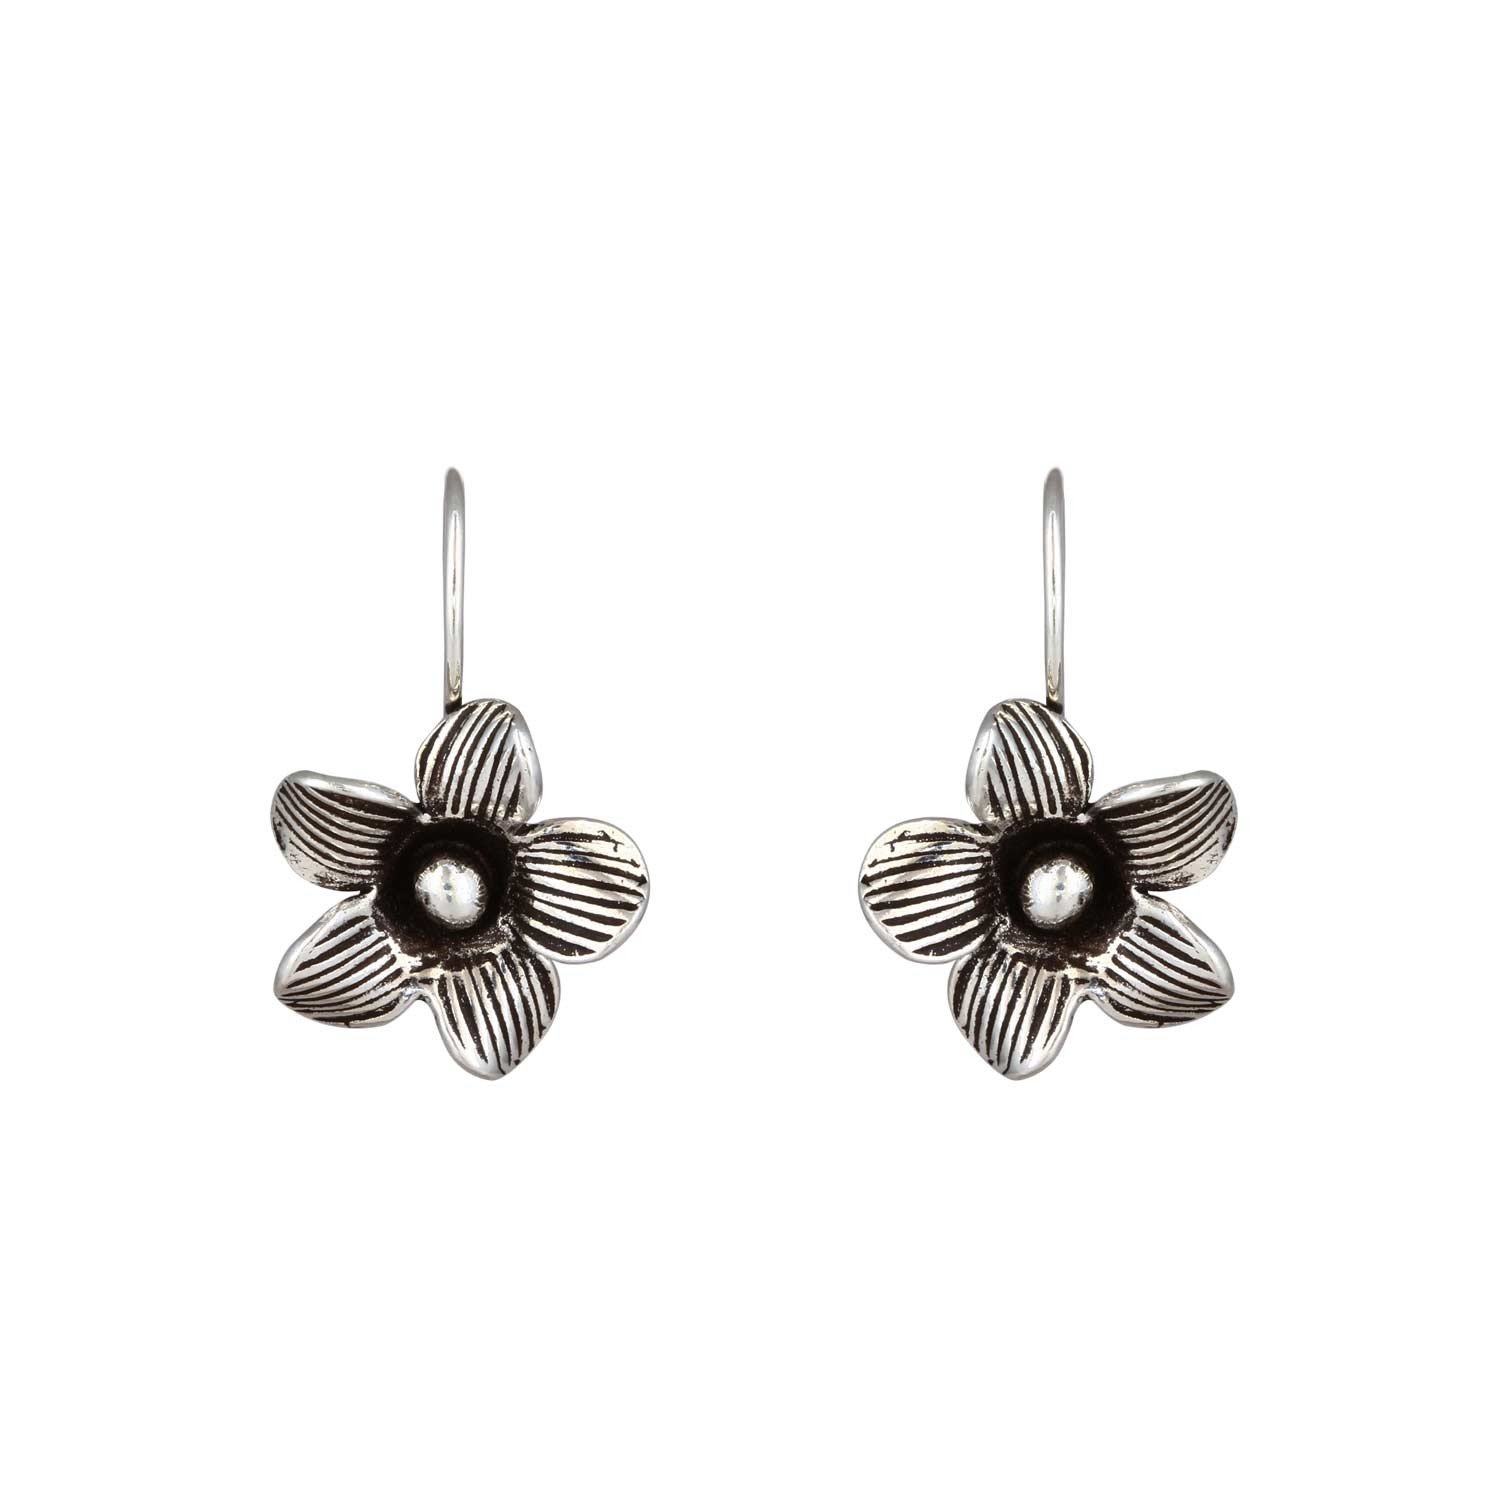 Oxidised Etched Floral Earrings